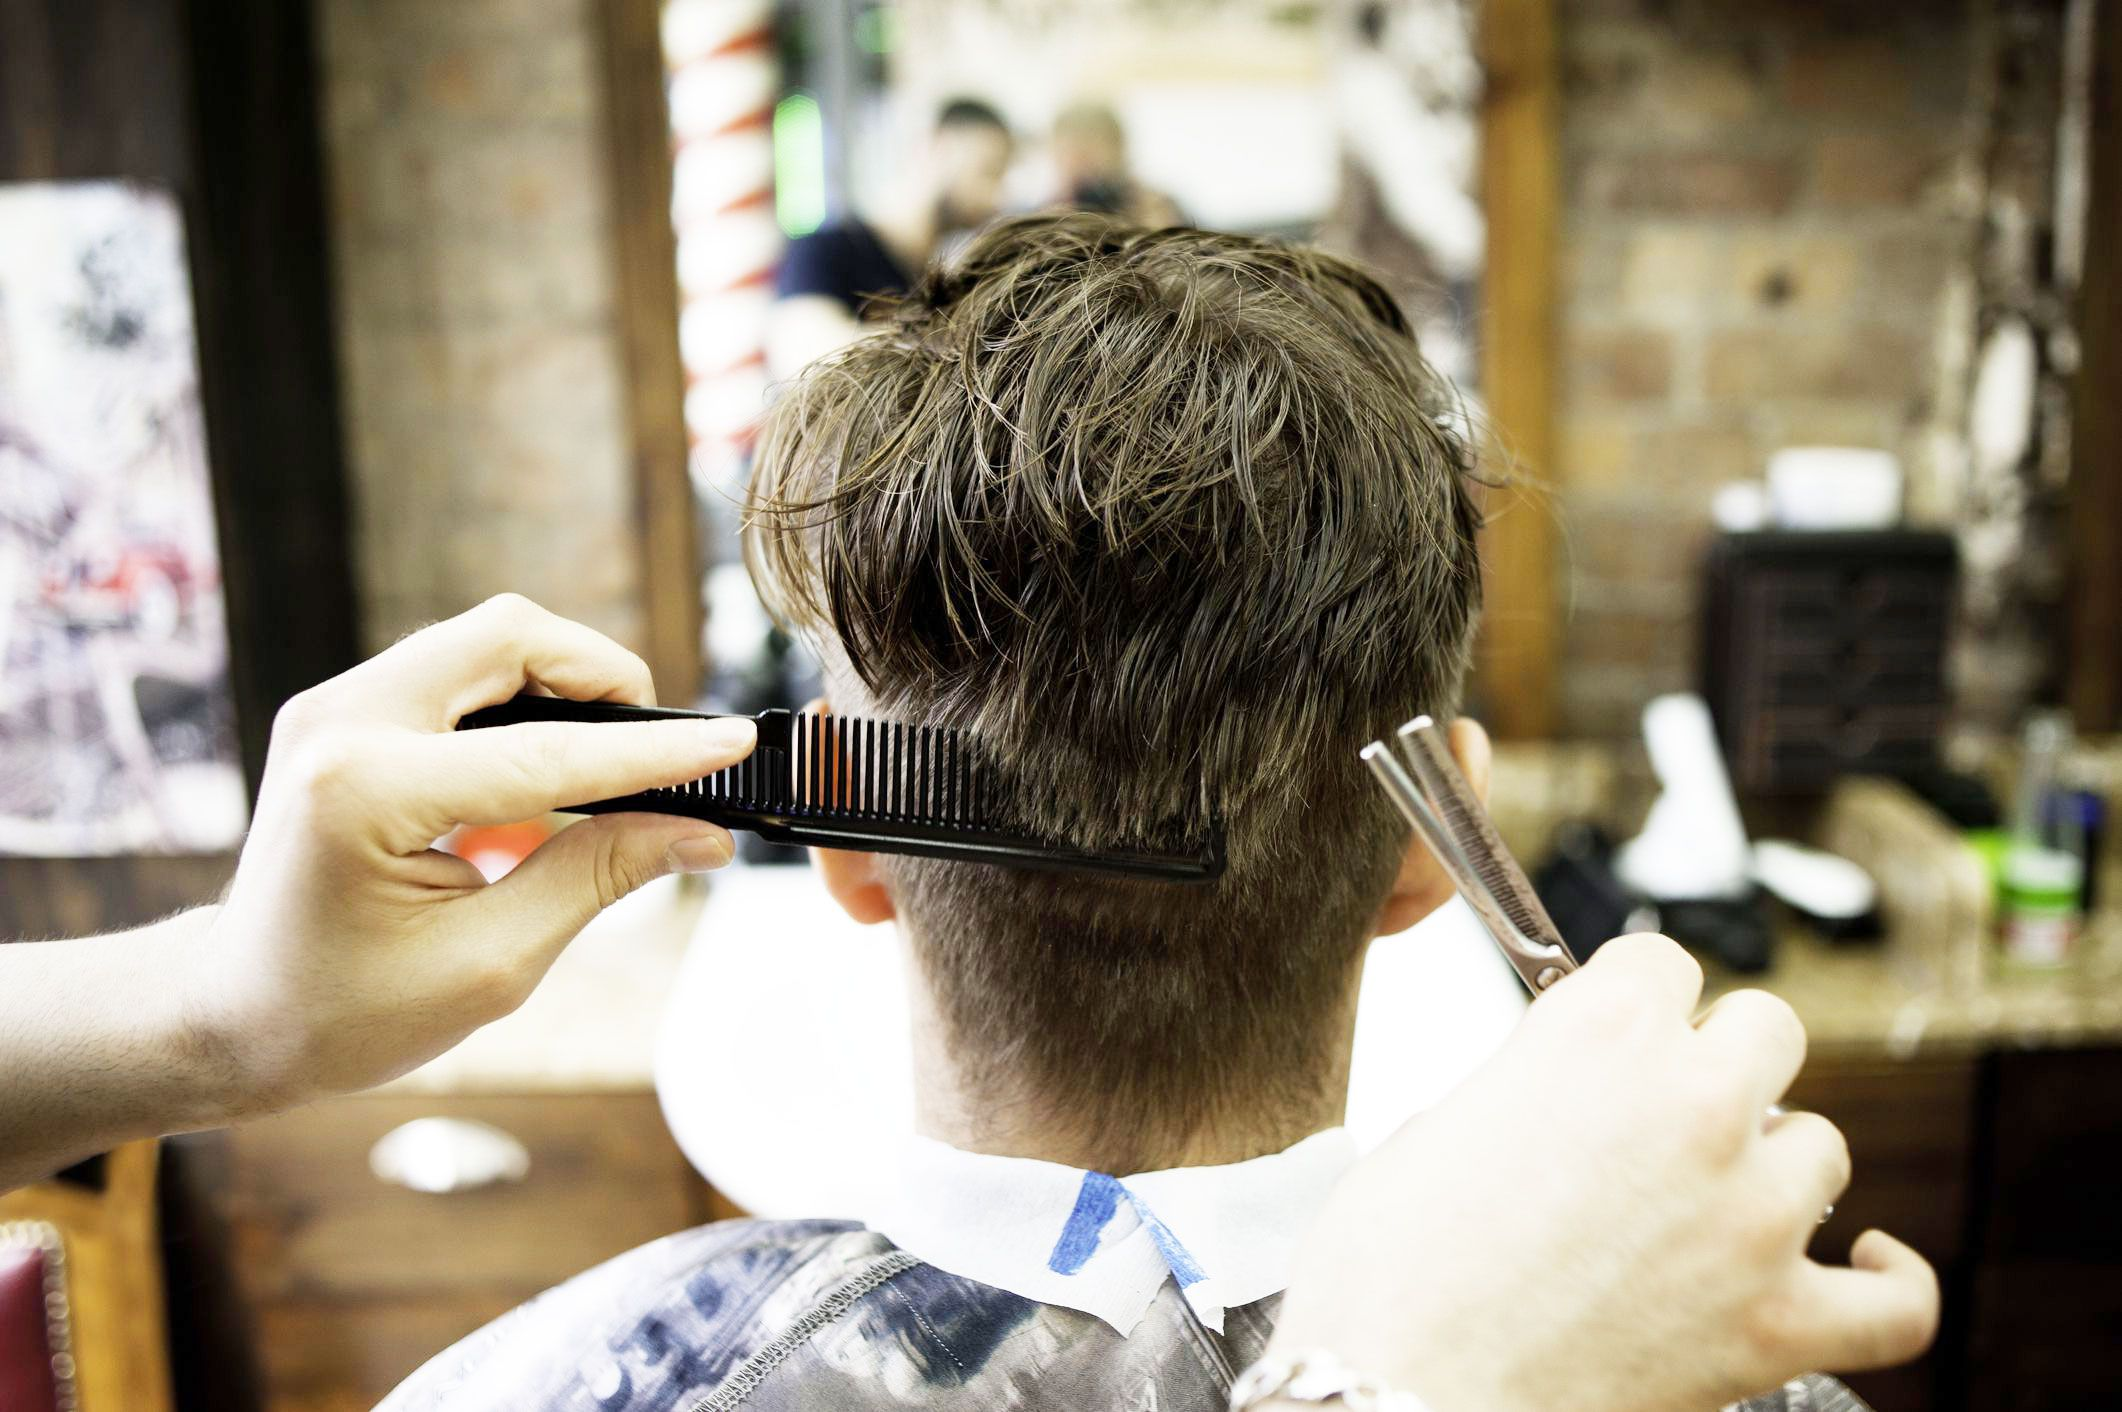 is an expensive haircut worth it? - how much men should pay